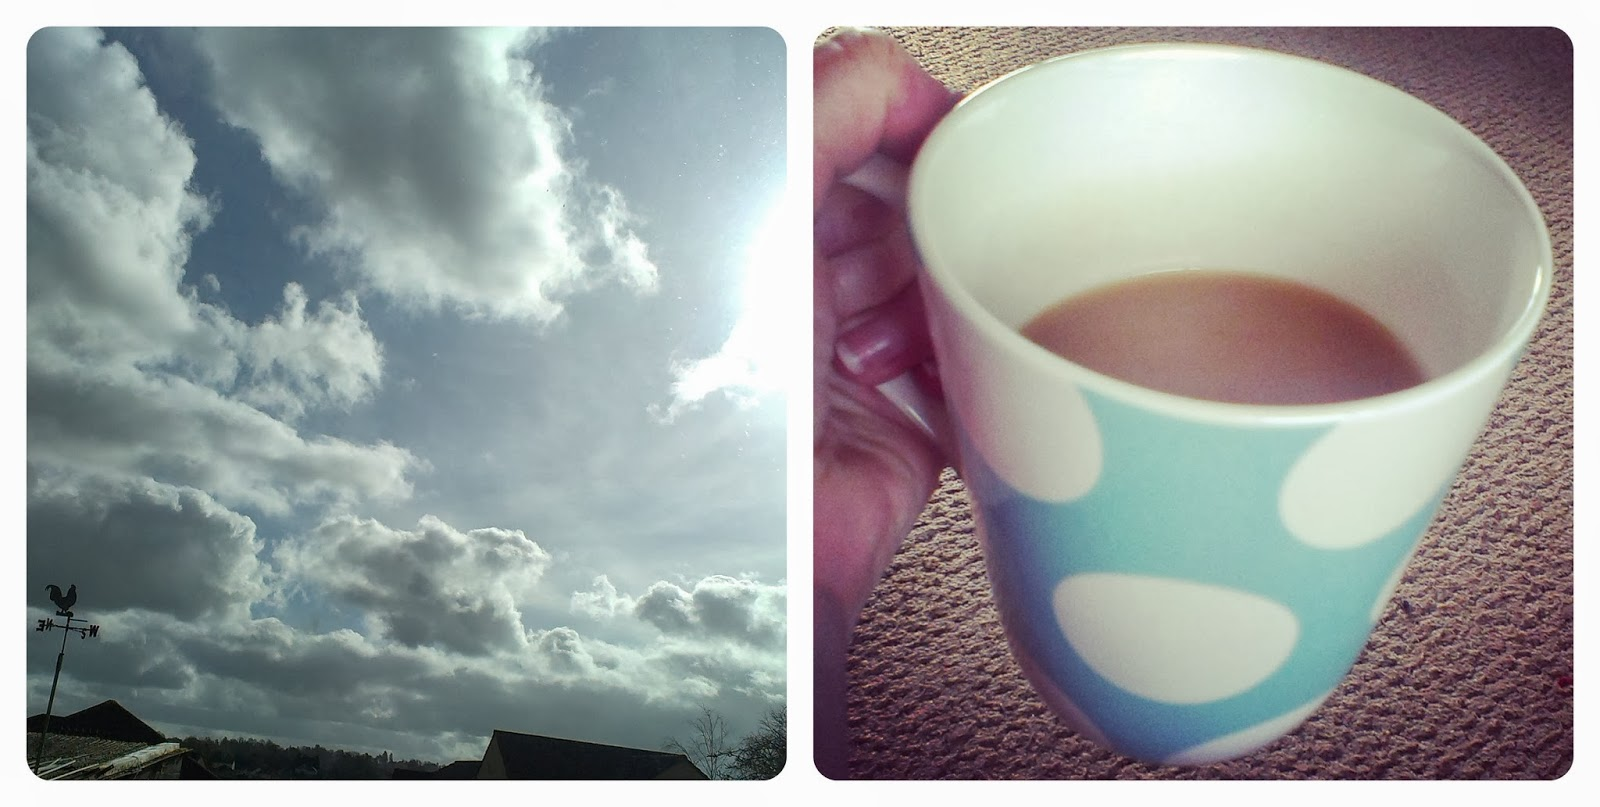 Blue sky, sunlight and clouds - A cup of tea